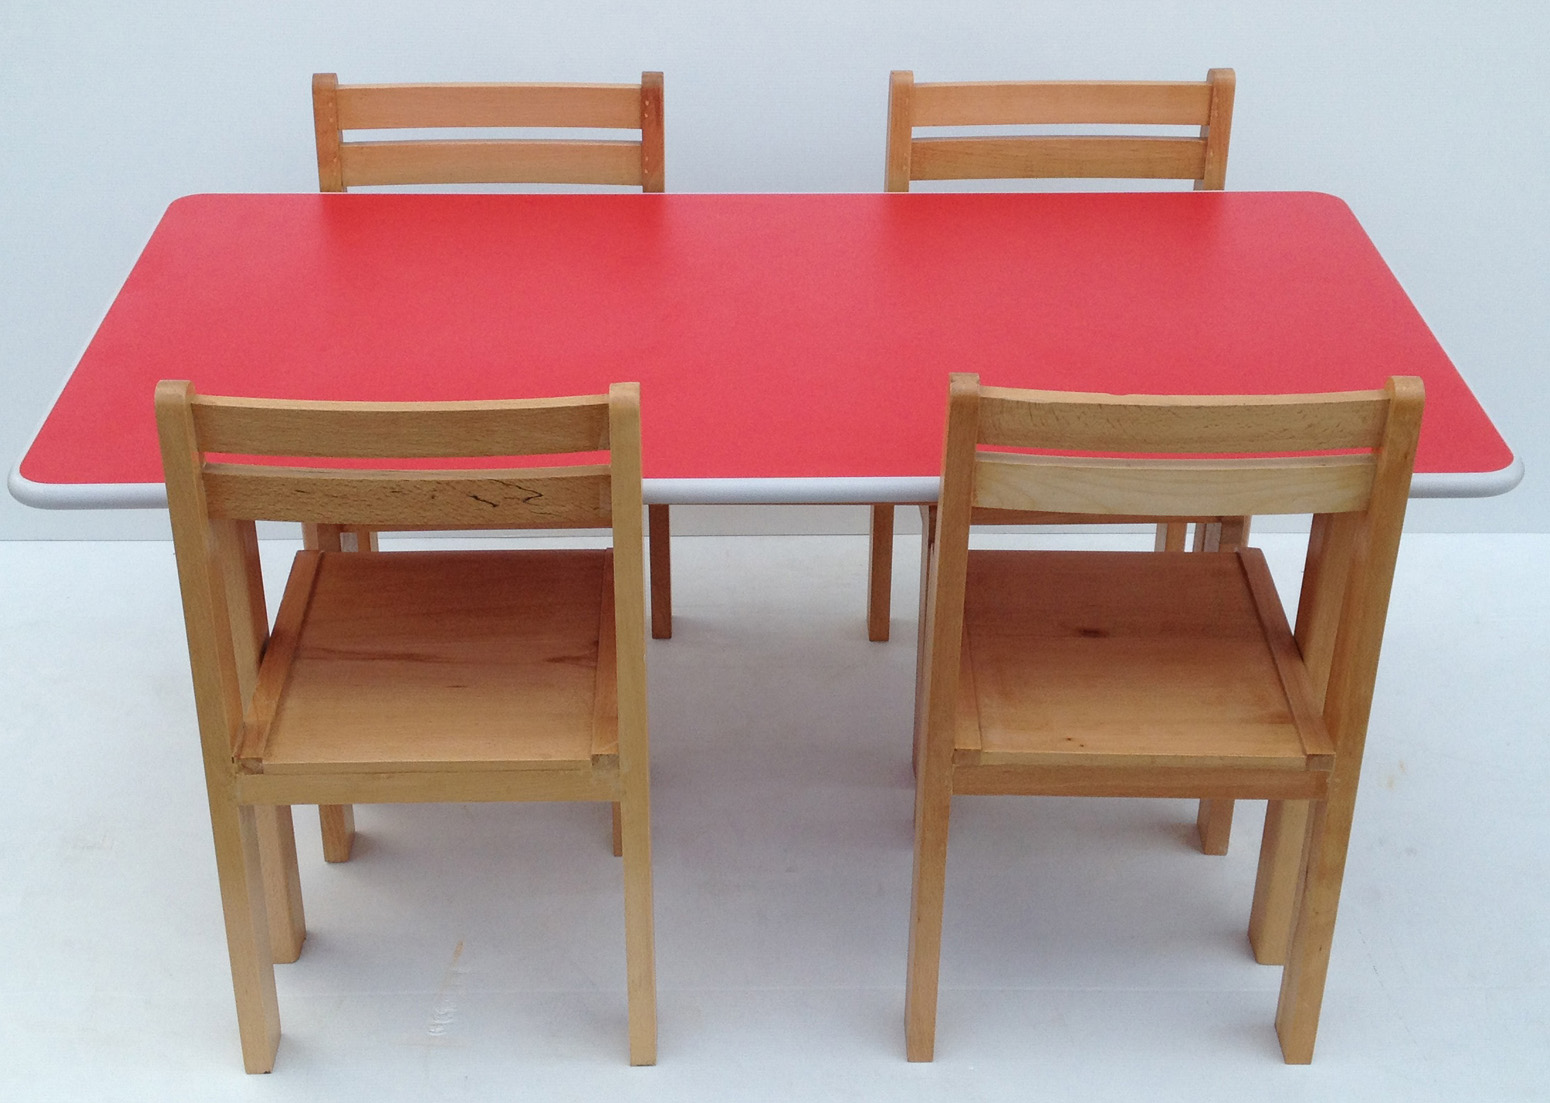 Kids Preschool Beech Wood Table and Chairs Set